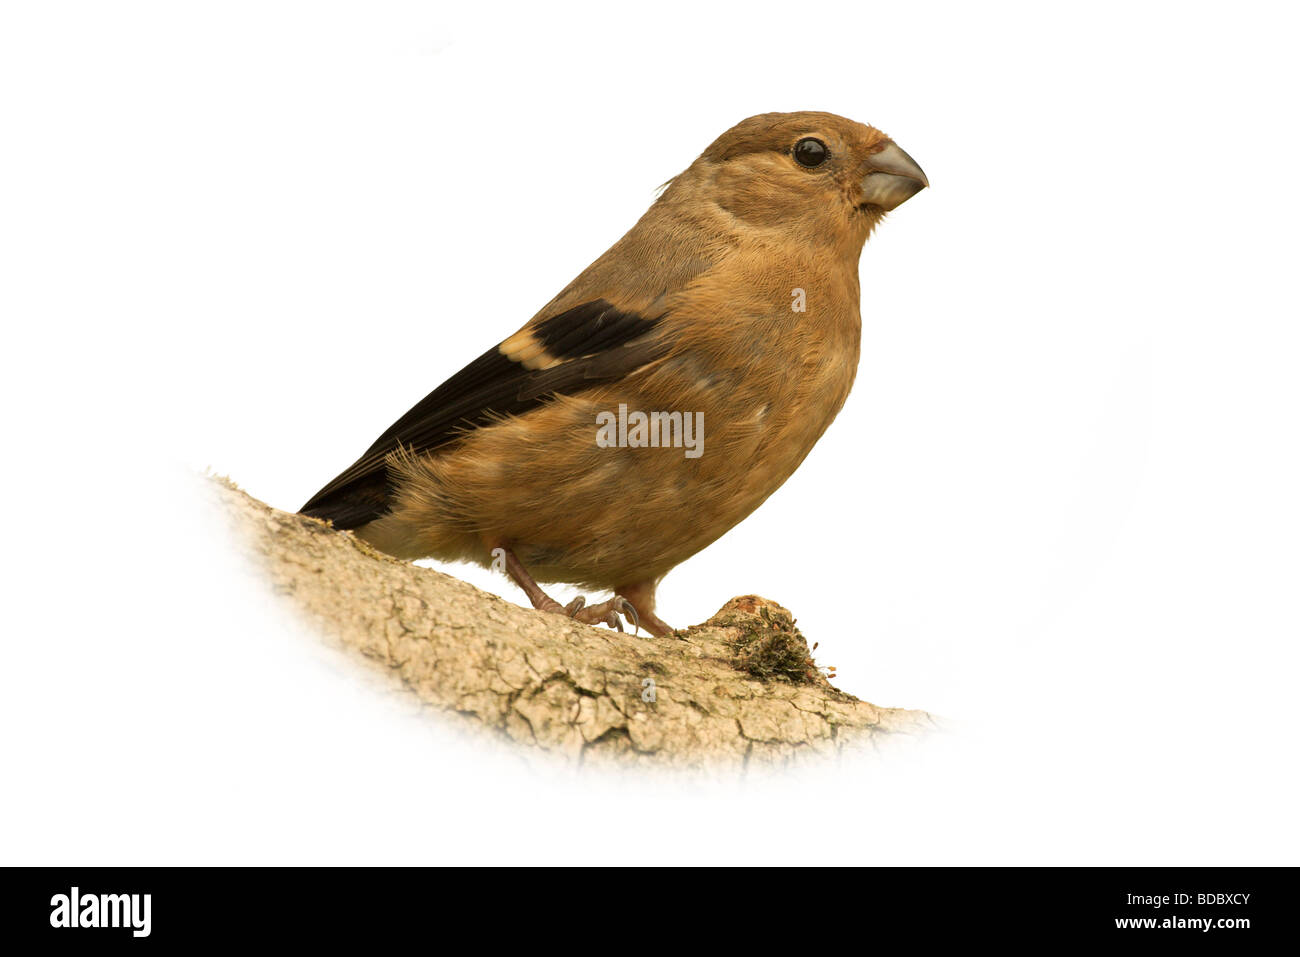 a juvenile bullfinch isolated against a white background - Stock Image